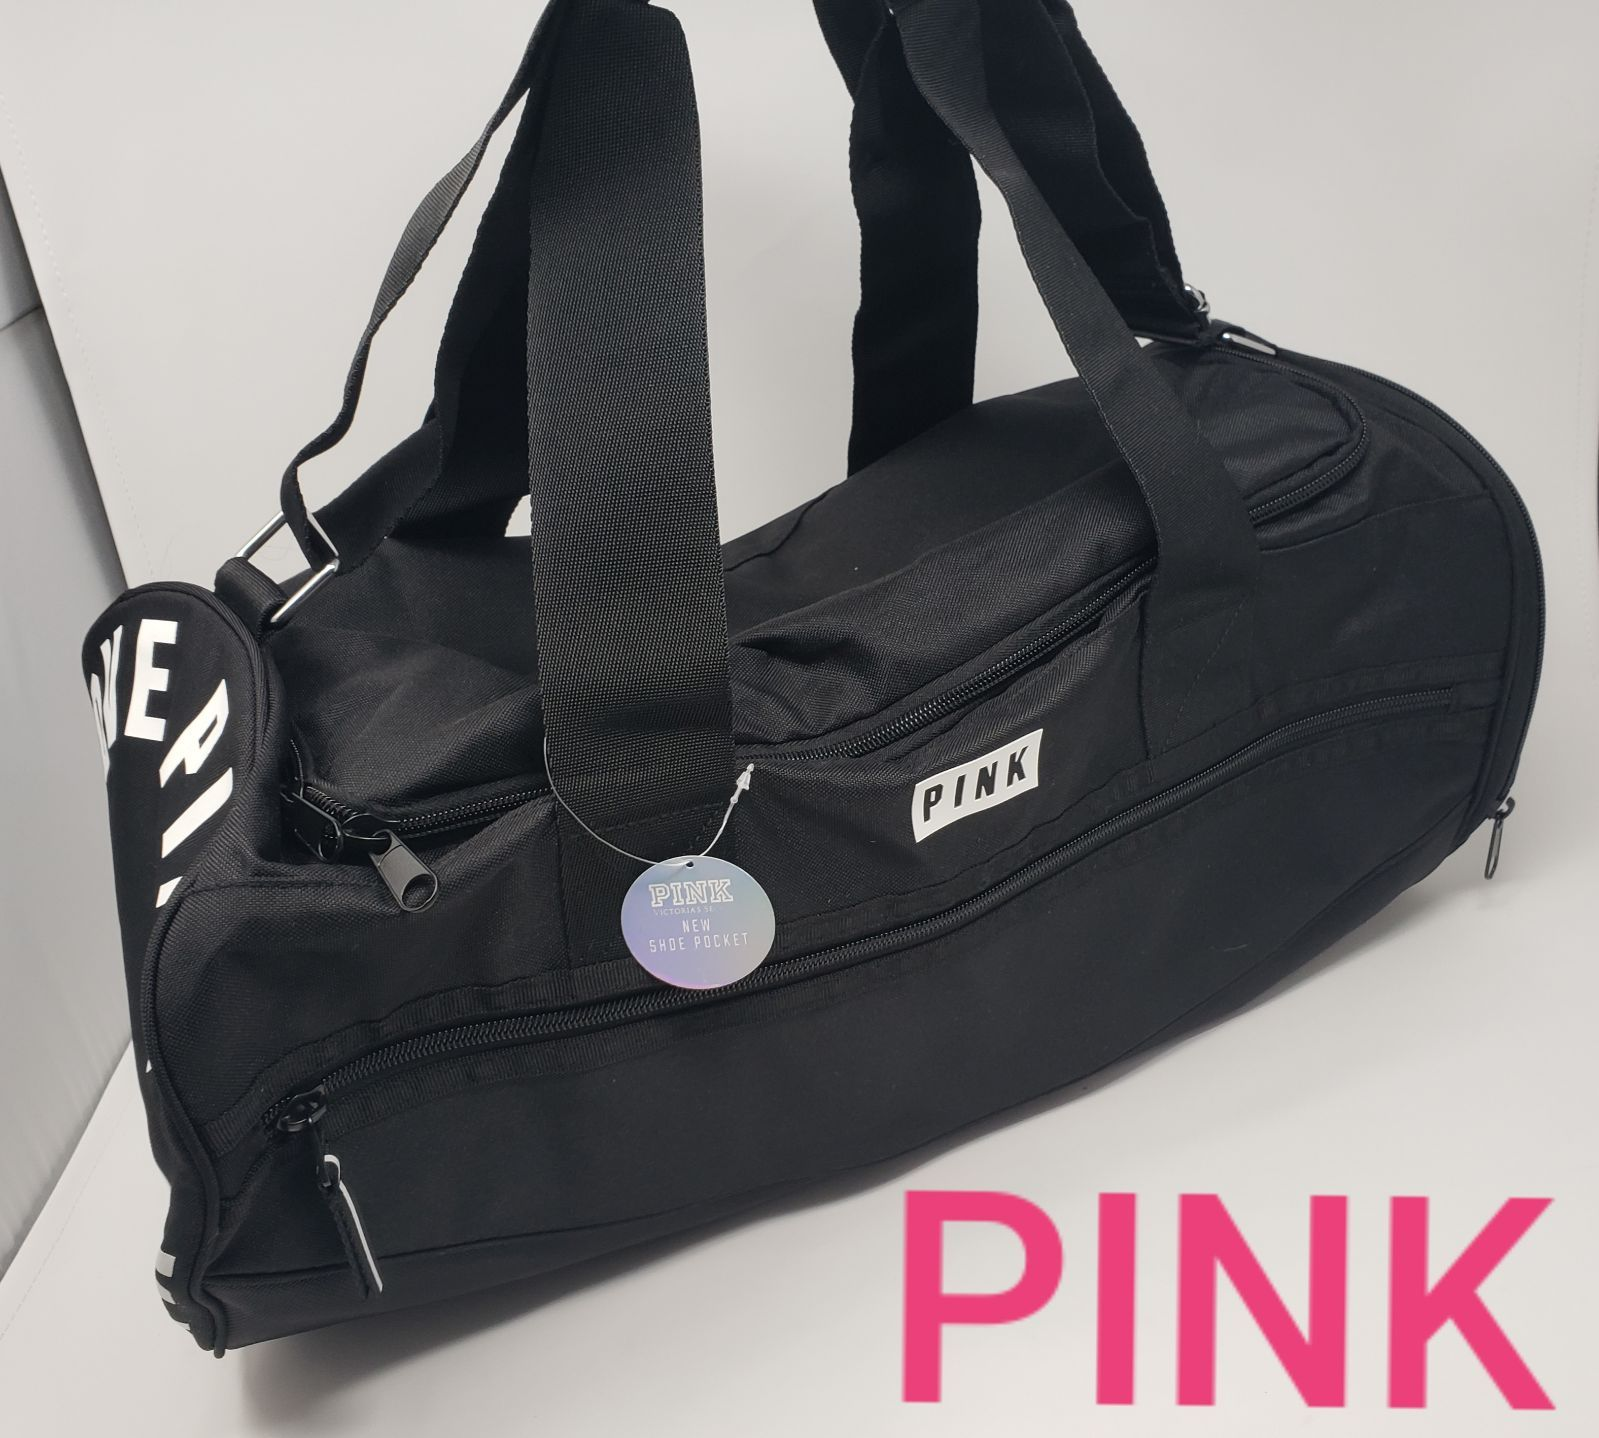 Brand new with tags Very rare find This duffle bag has a zippered side opening for shoes and a front zippered pocket Price is firm Measures roughly 20 x 10 x 10 Please ch...